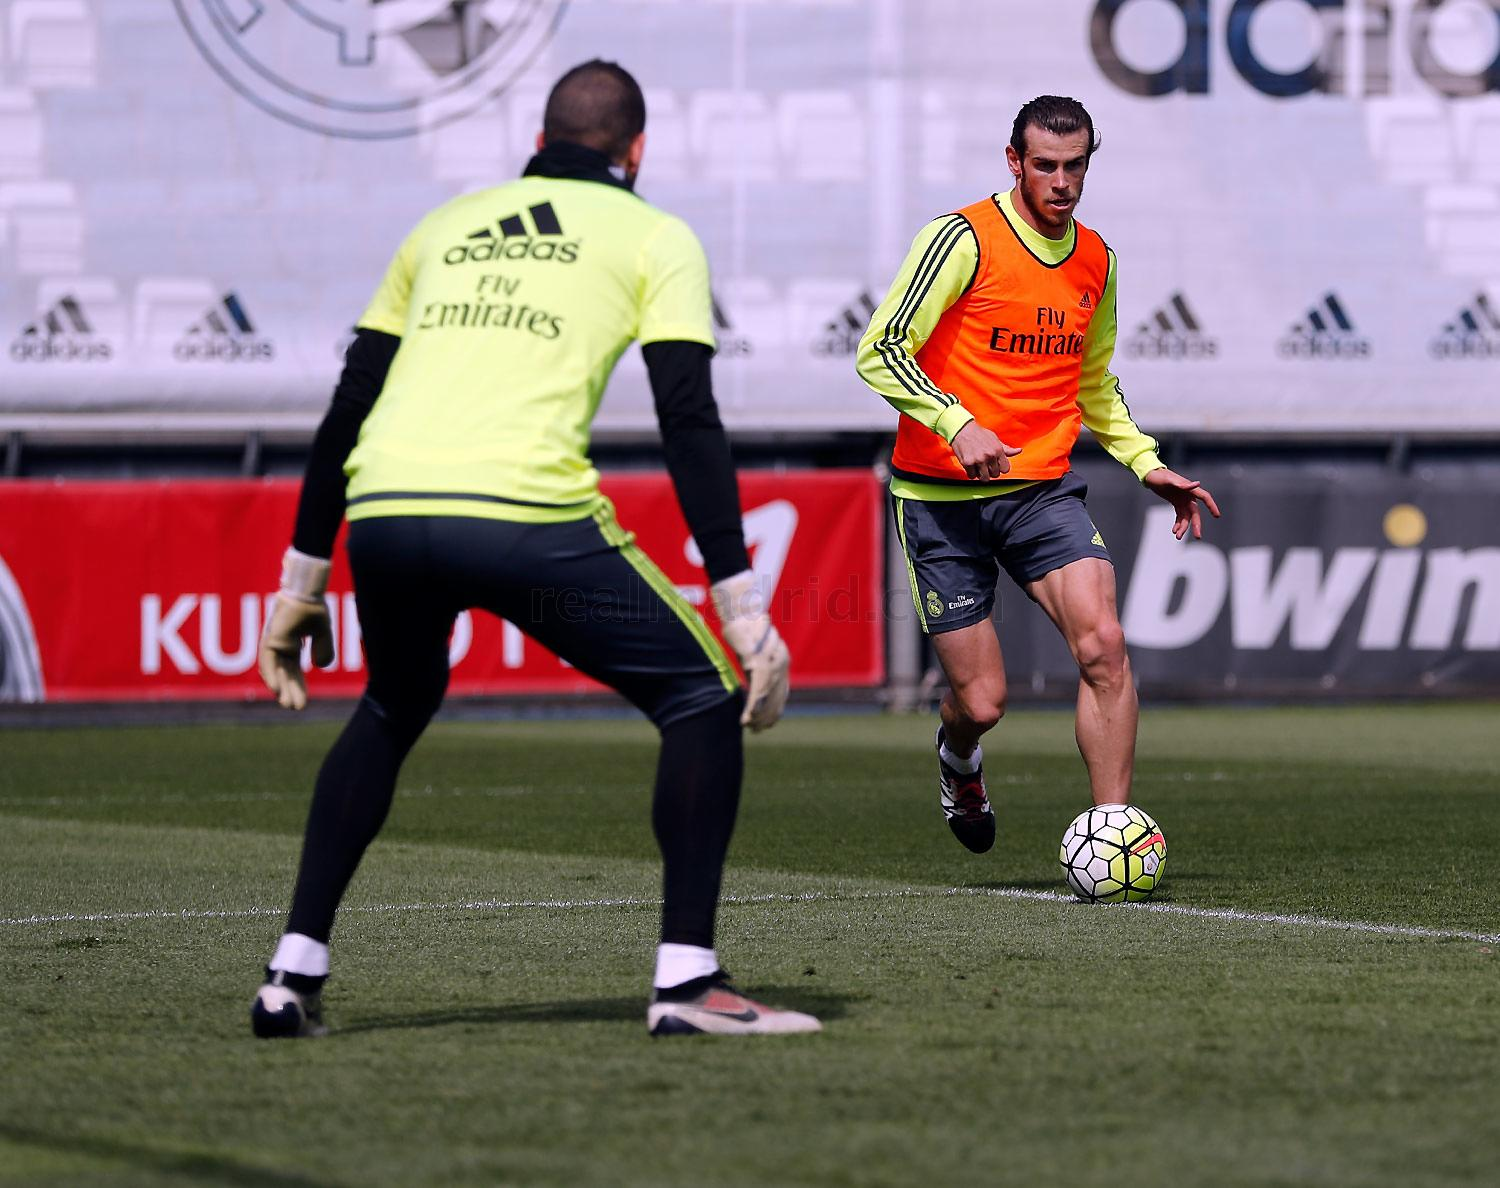 Real Madrid - Entrenamiento del Real Madrid - 21-04-2016